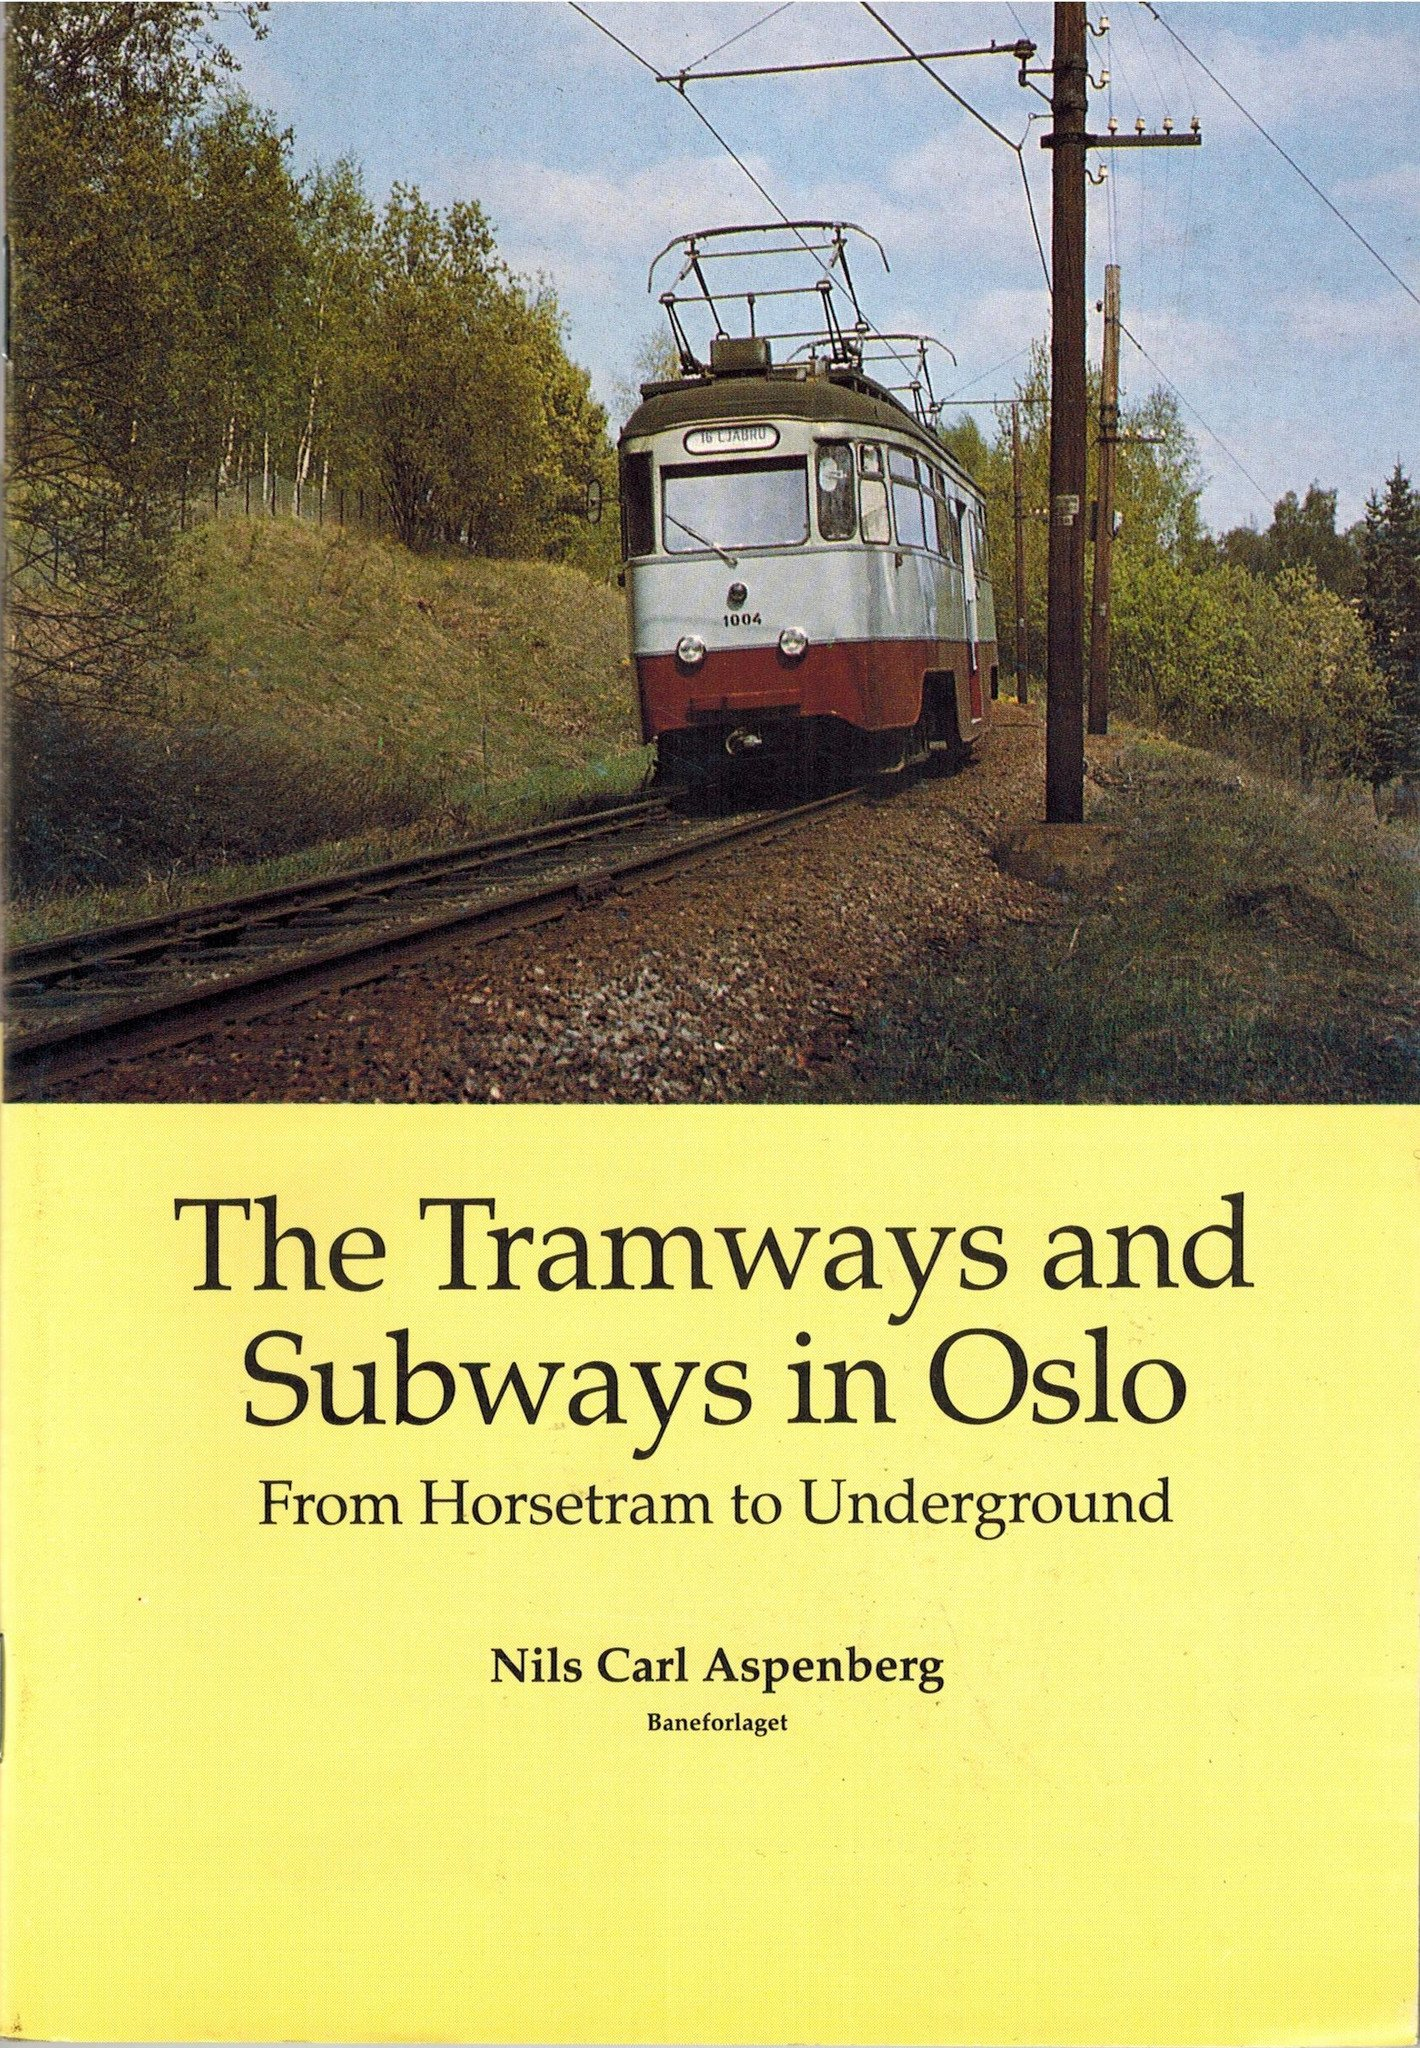 The Tramways and Subways in Oslo